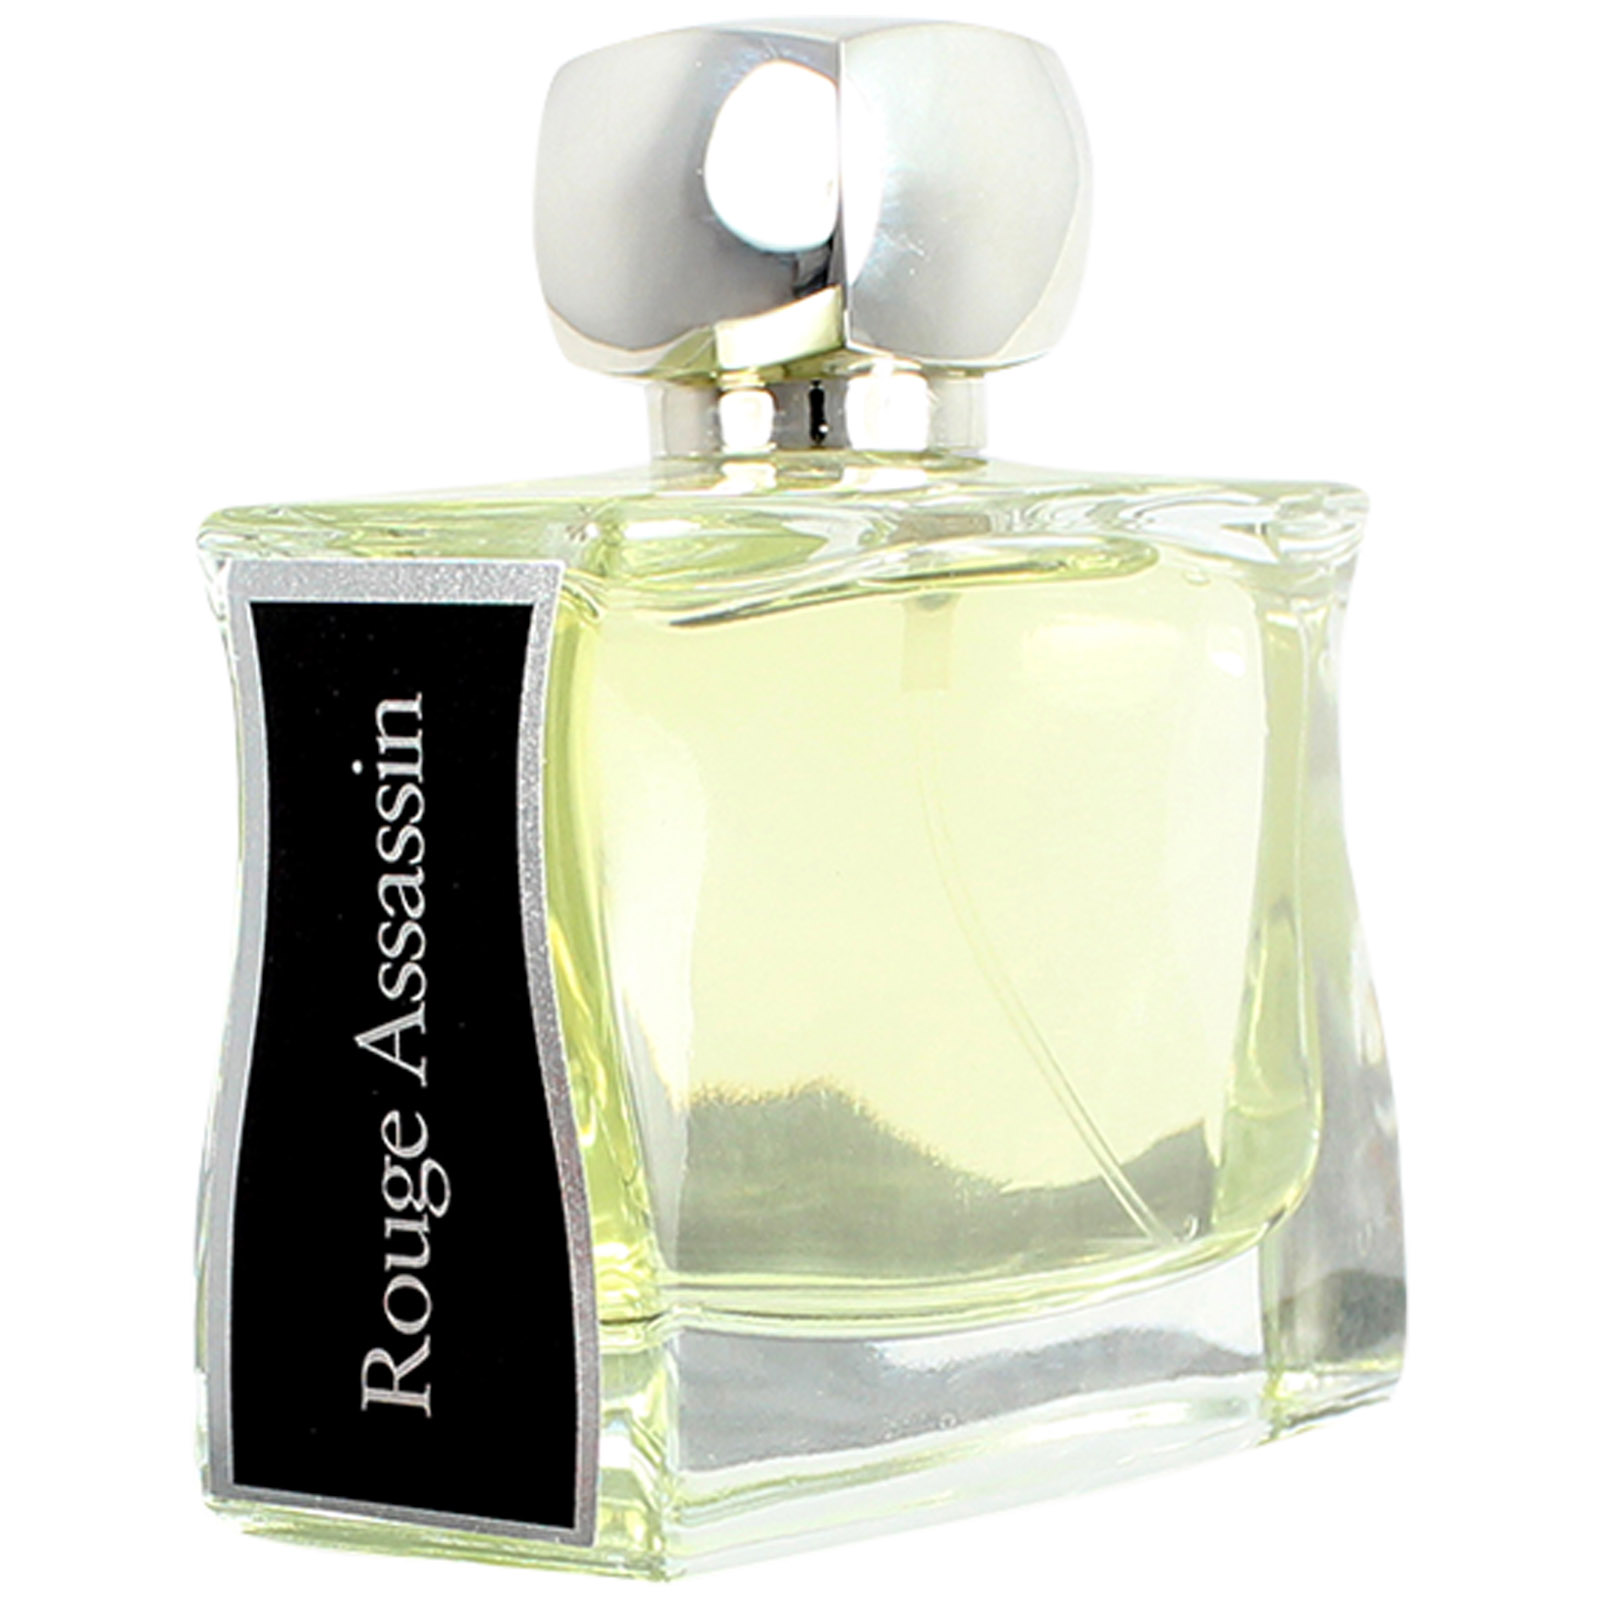 Rouge assassin profumo eau de parfum 100 ml